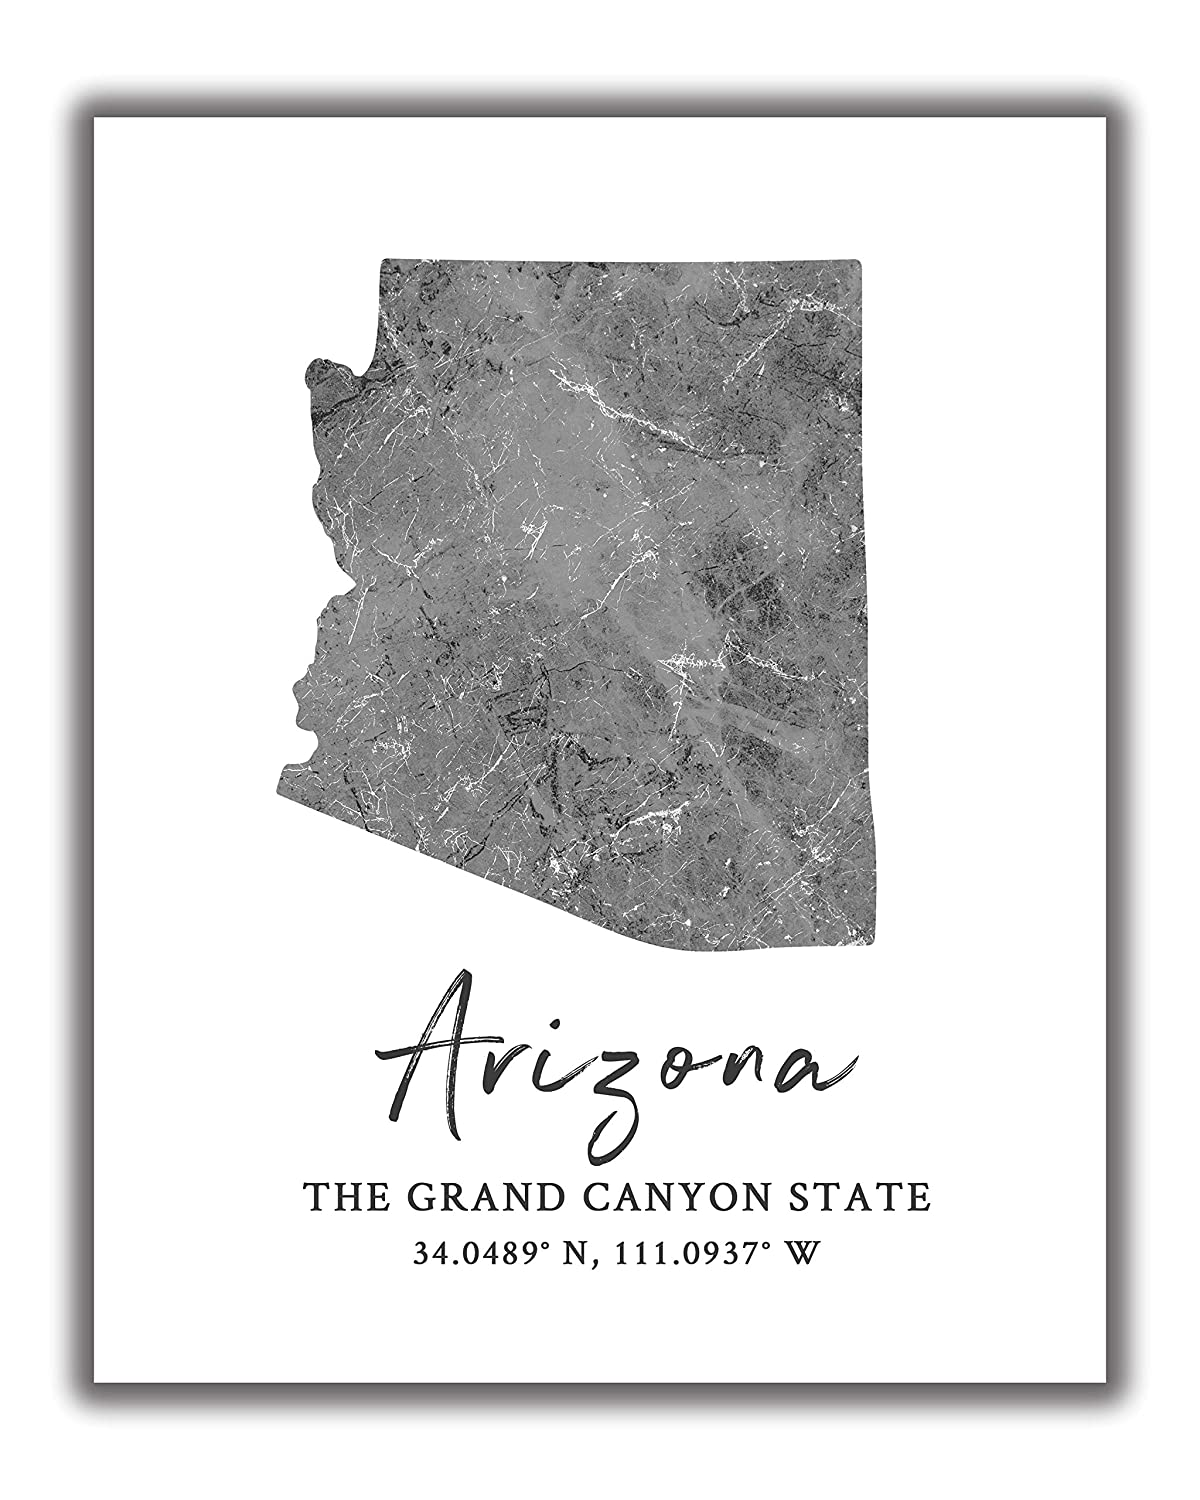 Arizona State Map Wall Art Print - 8x10 Silhouette Decor Print with Coordinates. Makes a Great Arizona-Themed Gift. Shades of Grey, Black & White.